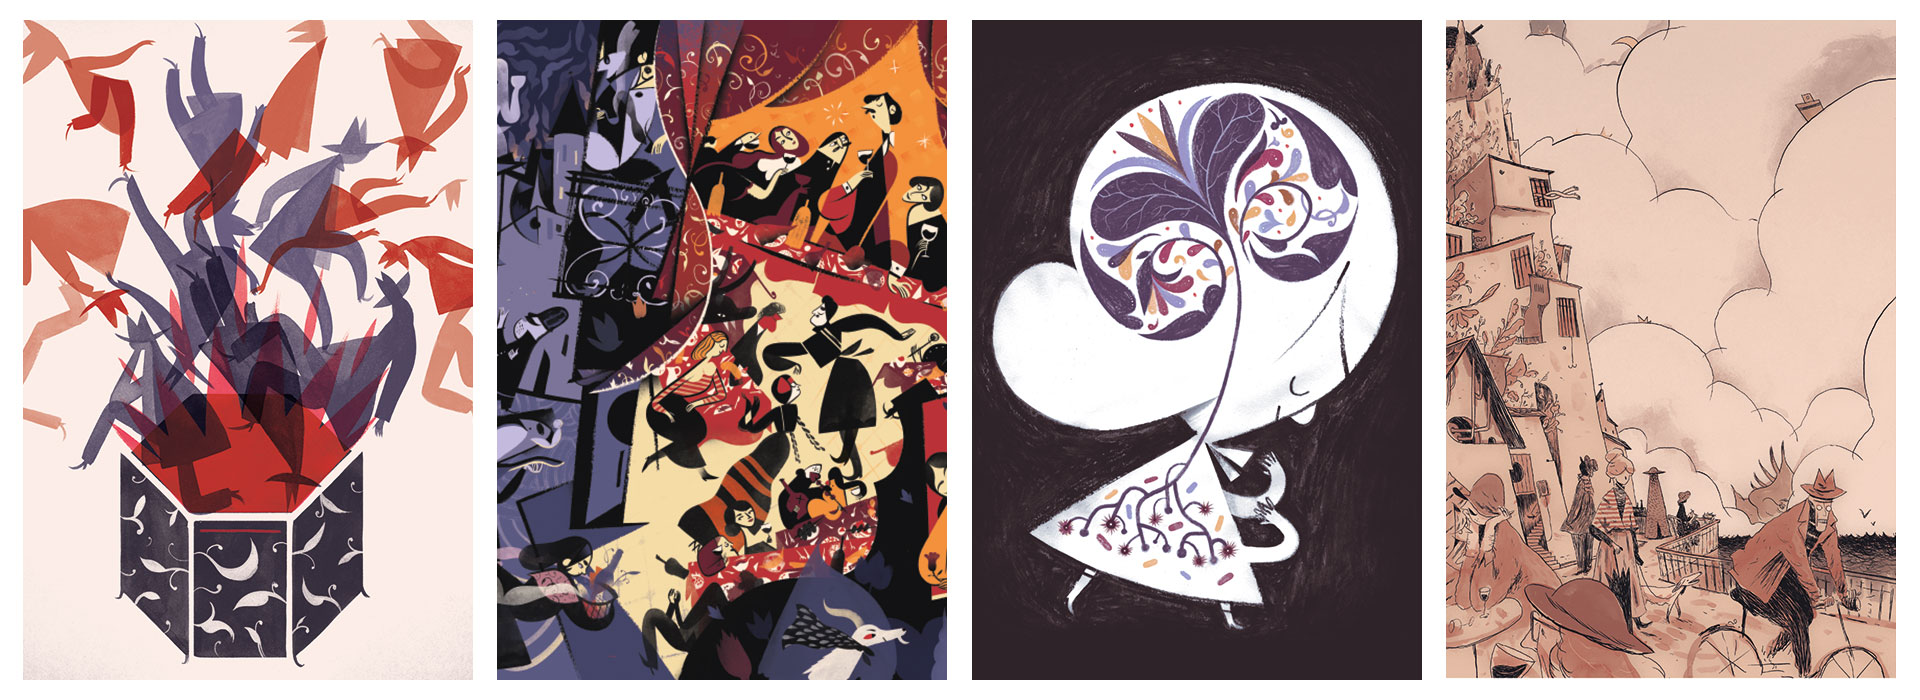 A fine line: the illustrated worlds of Roman Muradov